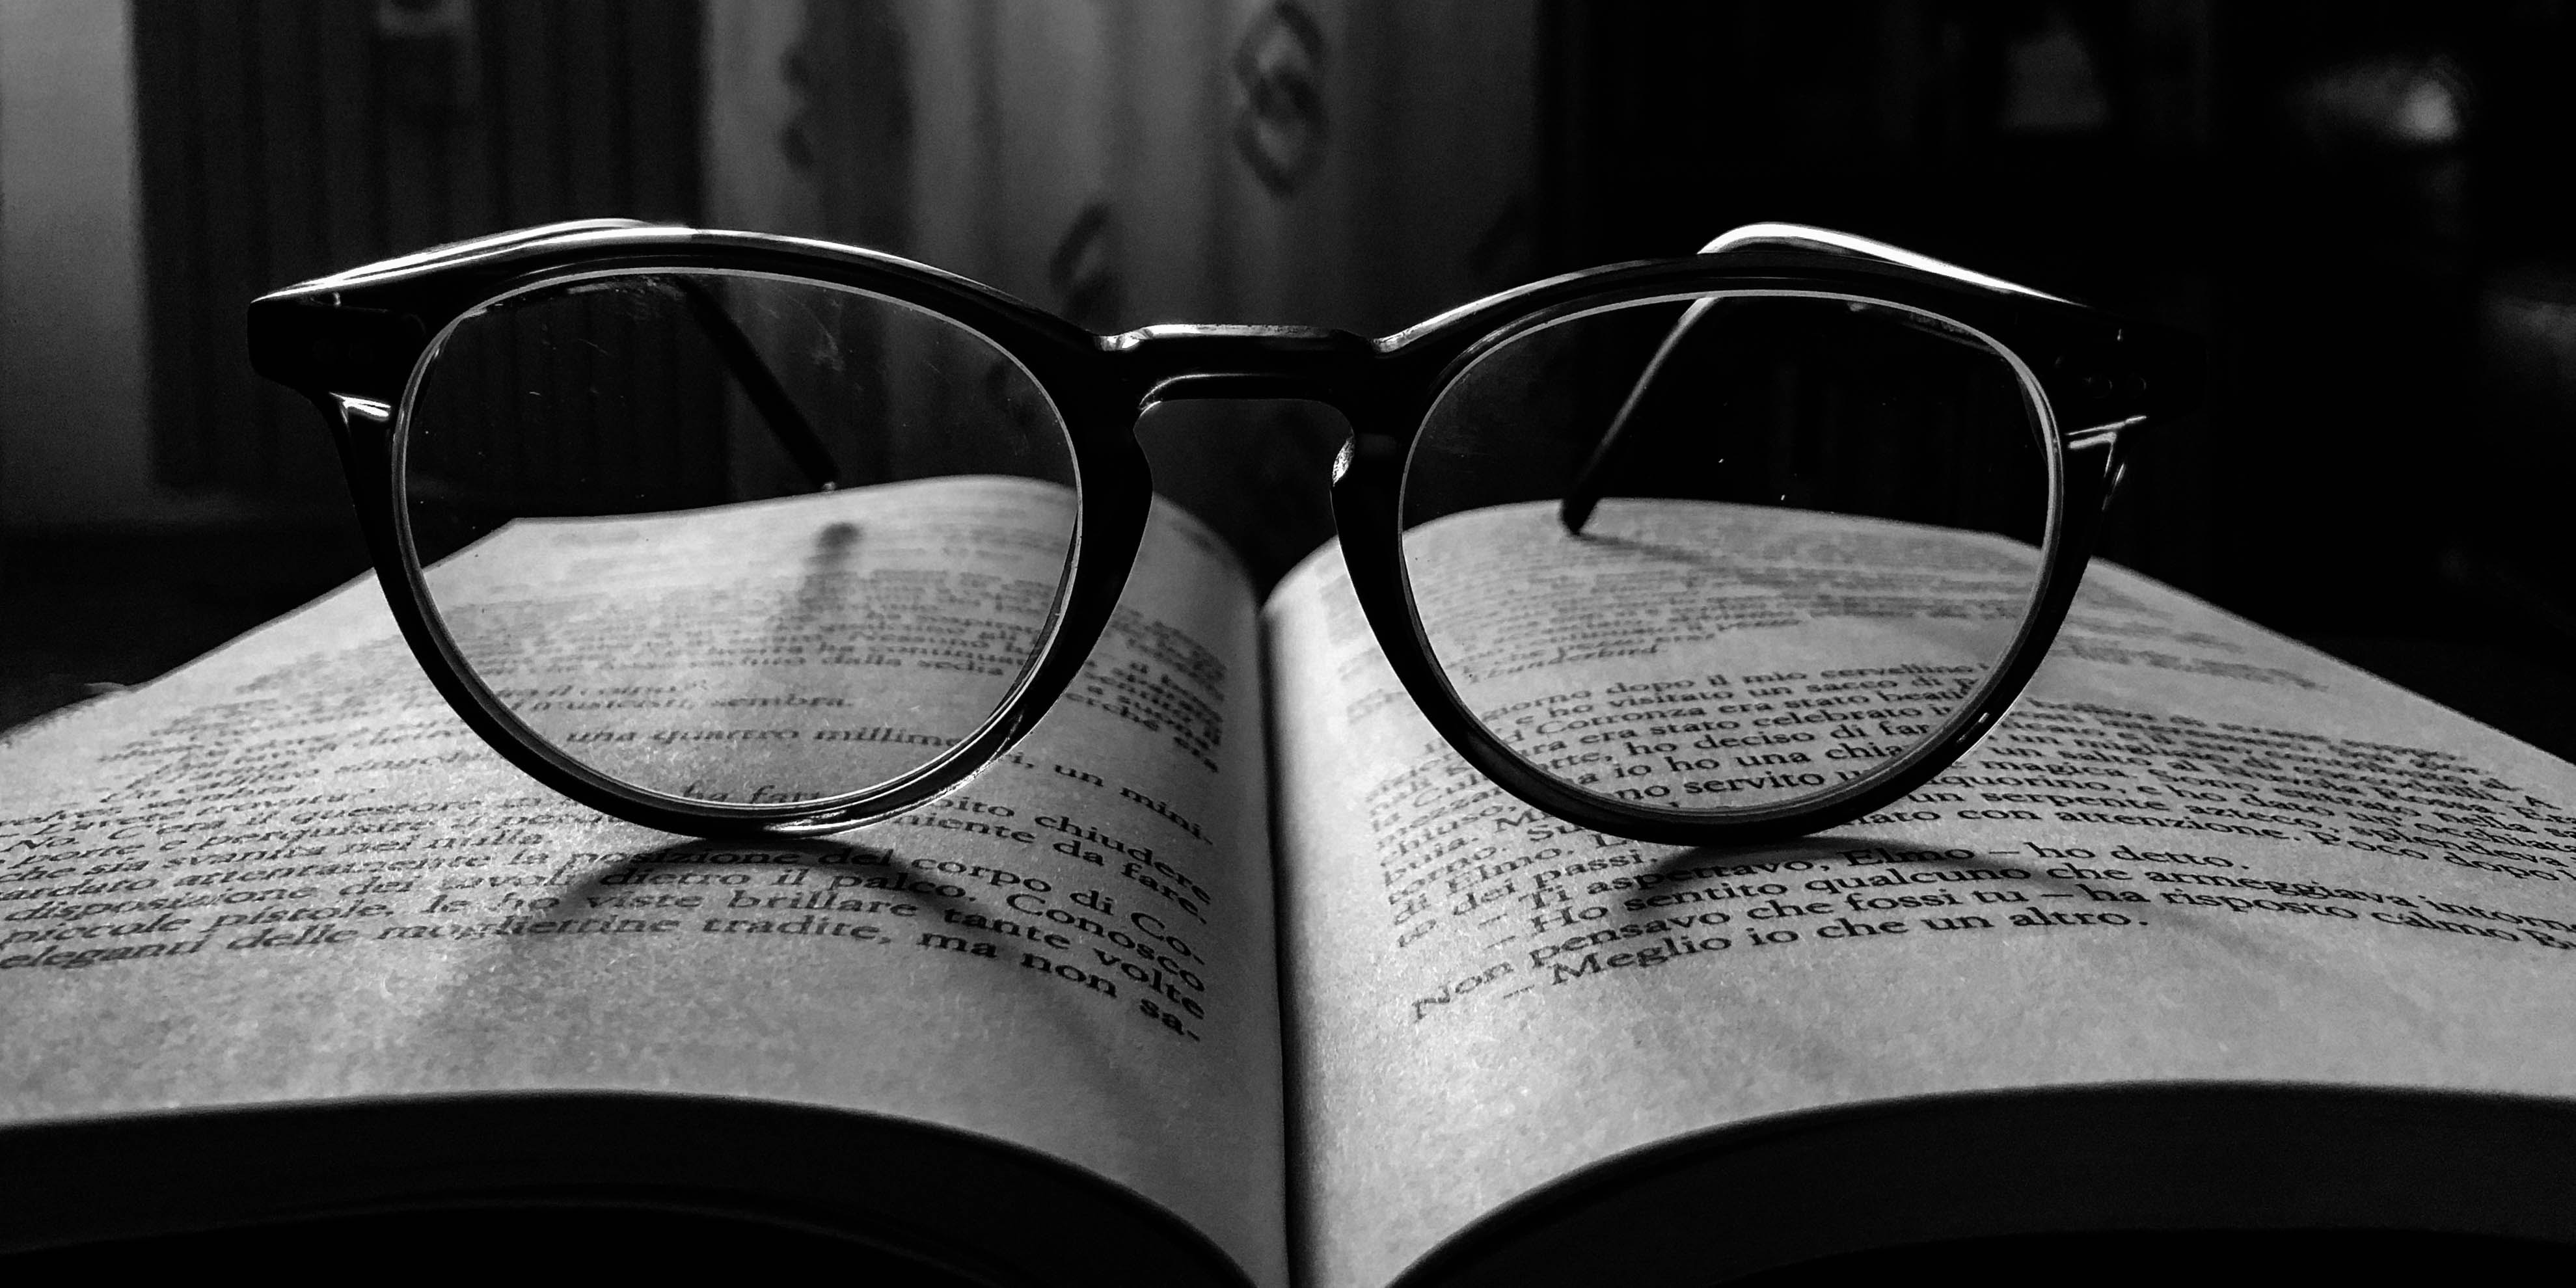 black frame eyeglasses on book